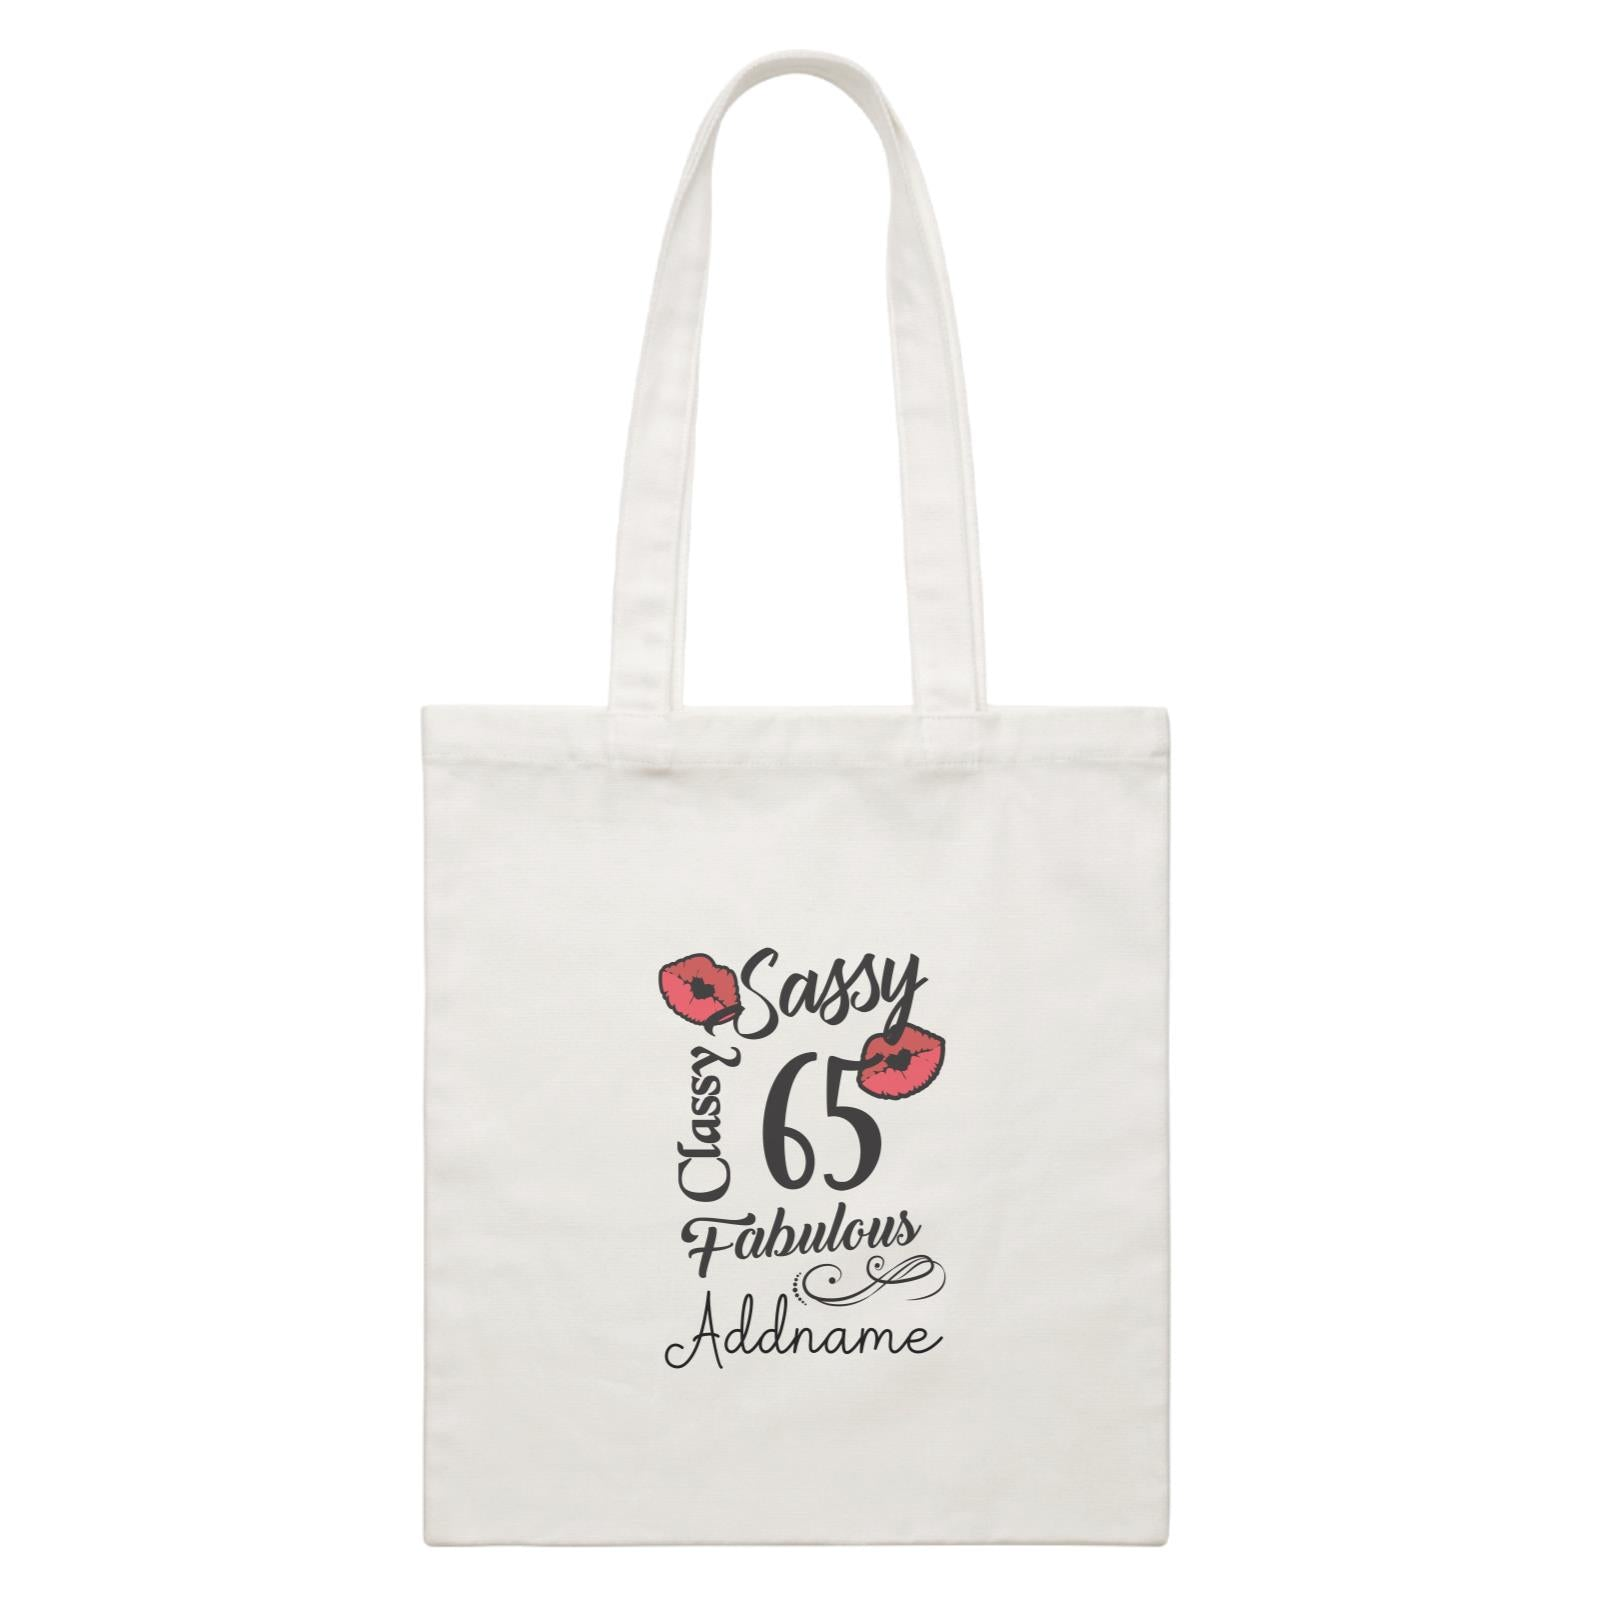 Personalize It Birthyear Sassy Classy and Fabulous with Addname and Add Year White White Canvas Bag